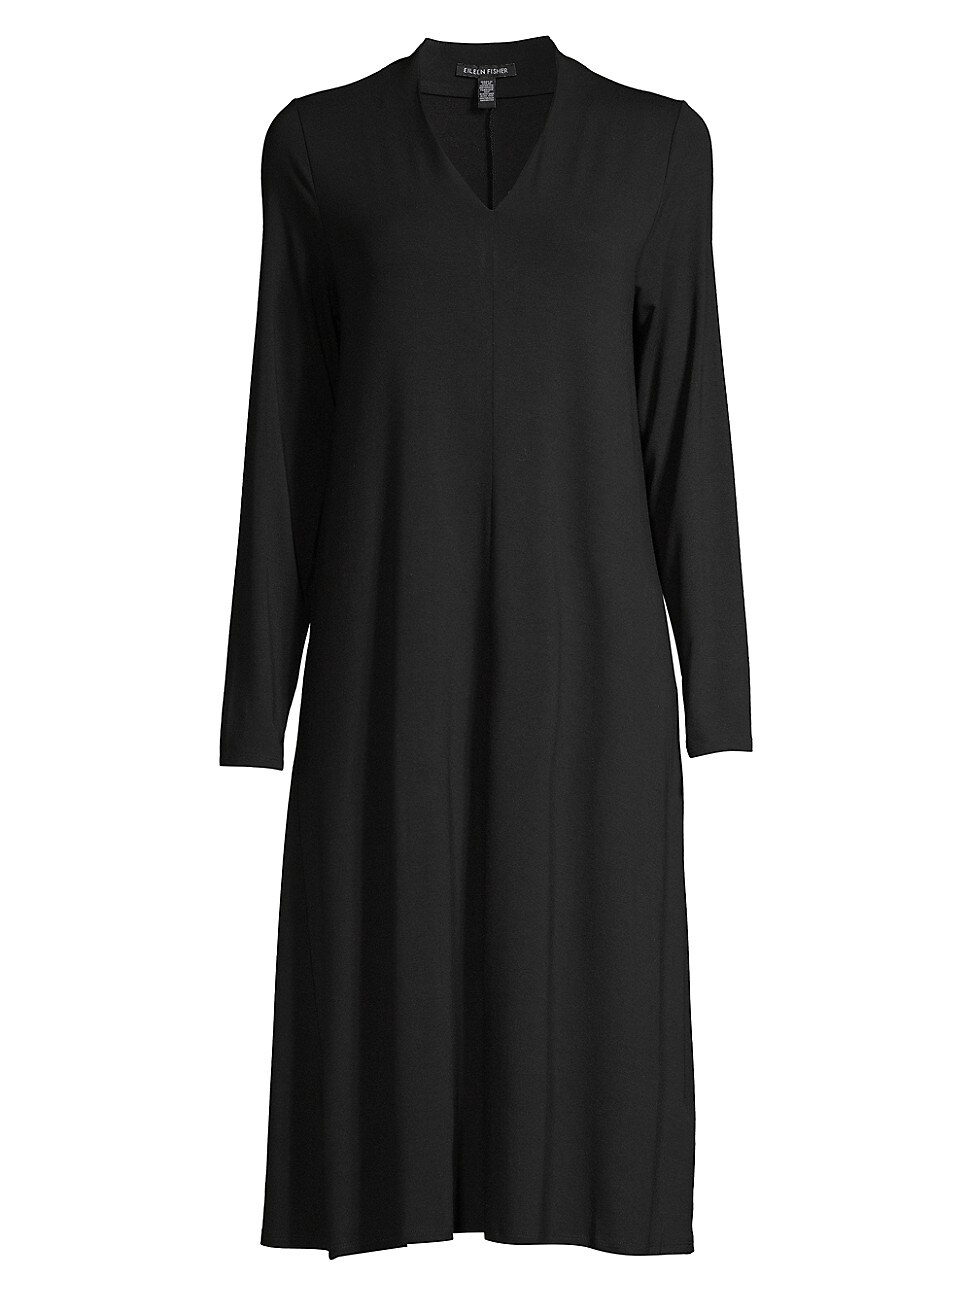 Eileen Fisher Women's V-neck Long-sleeve Dress In Black